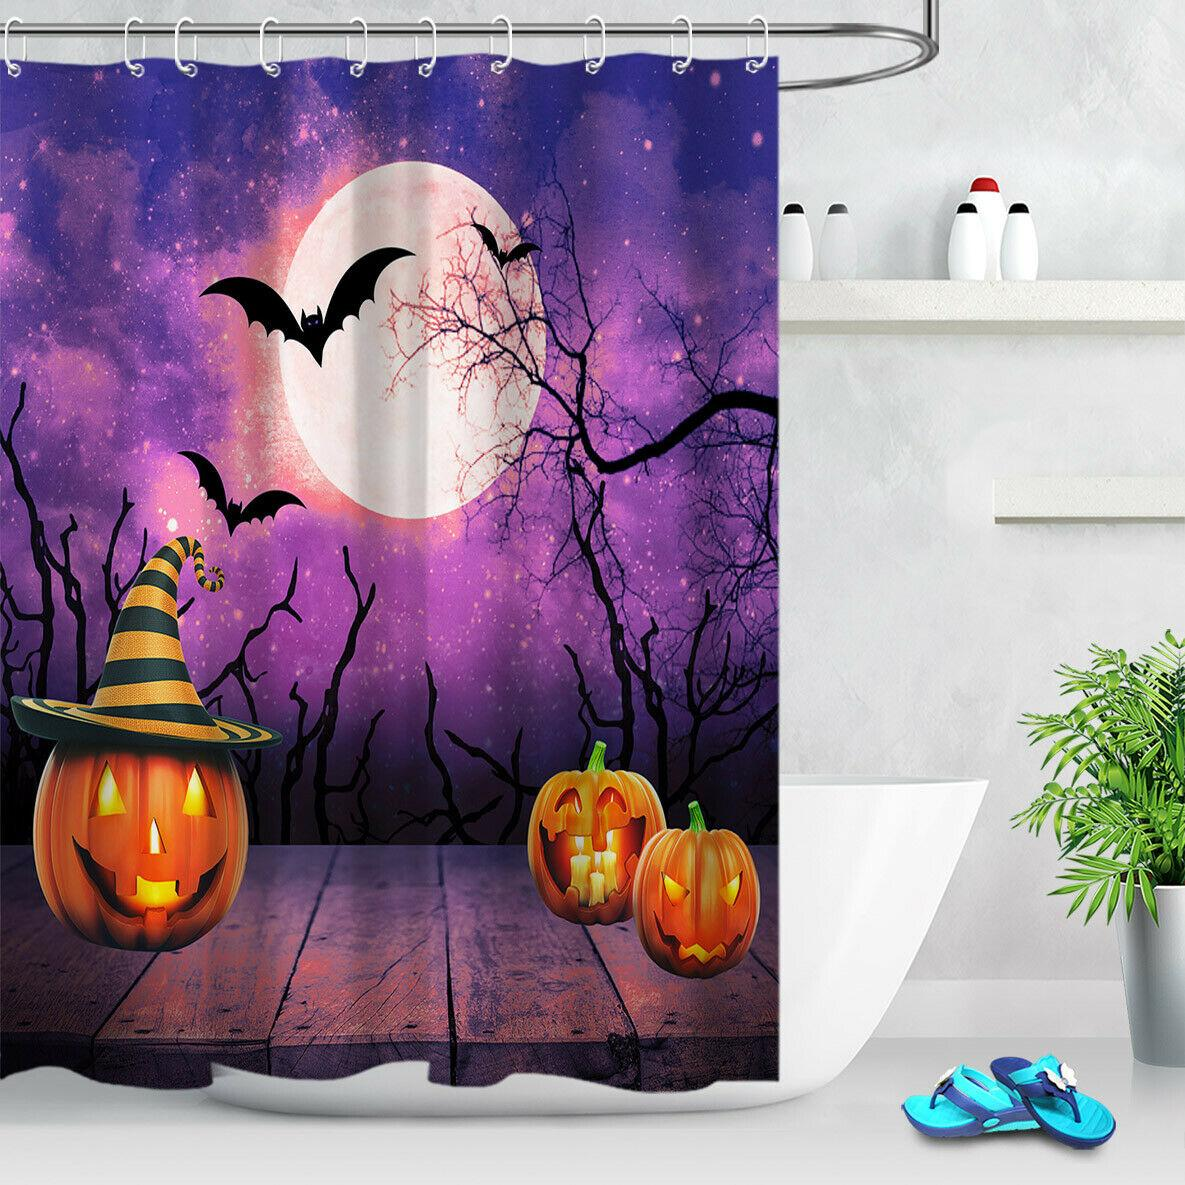 Halloween Purple Sky Pumpkin Bats Bathroom Shower Curtain Durable Fabric Mold Proof Bathroom Pendant Creative With 12 Hooks 180x180cm